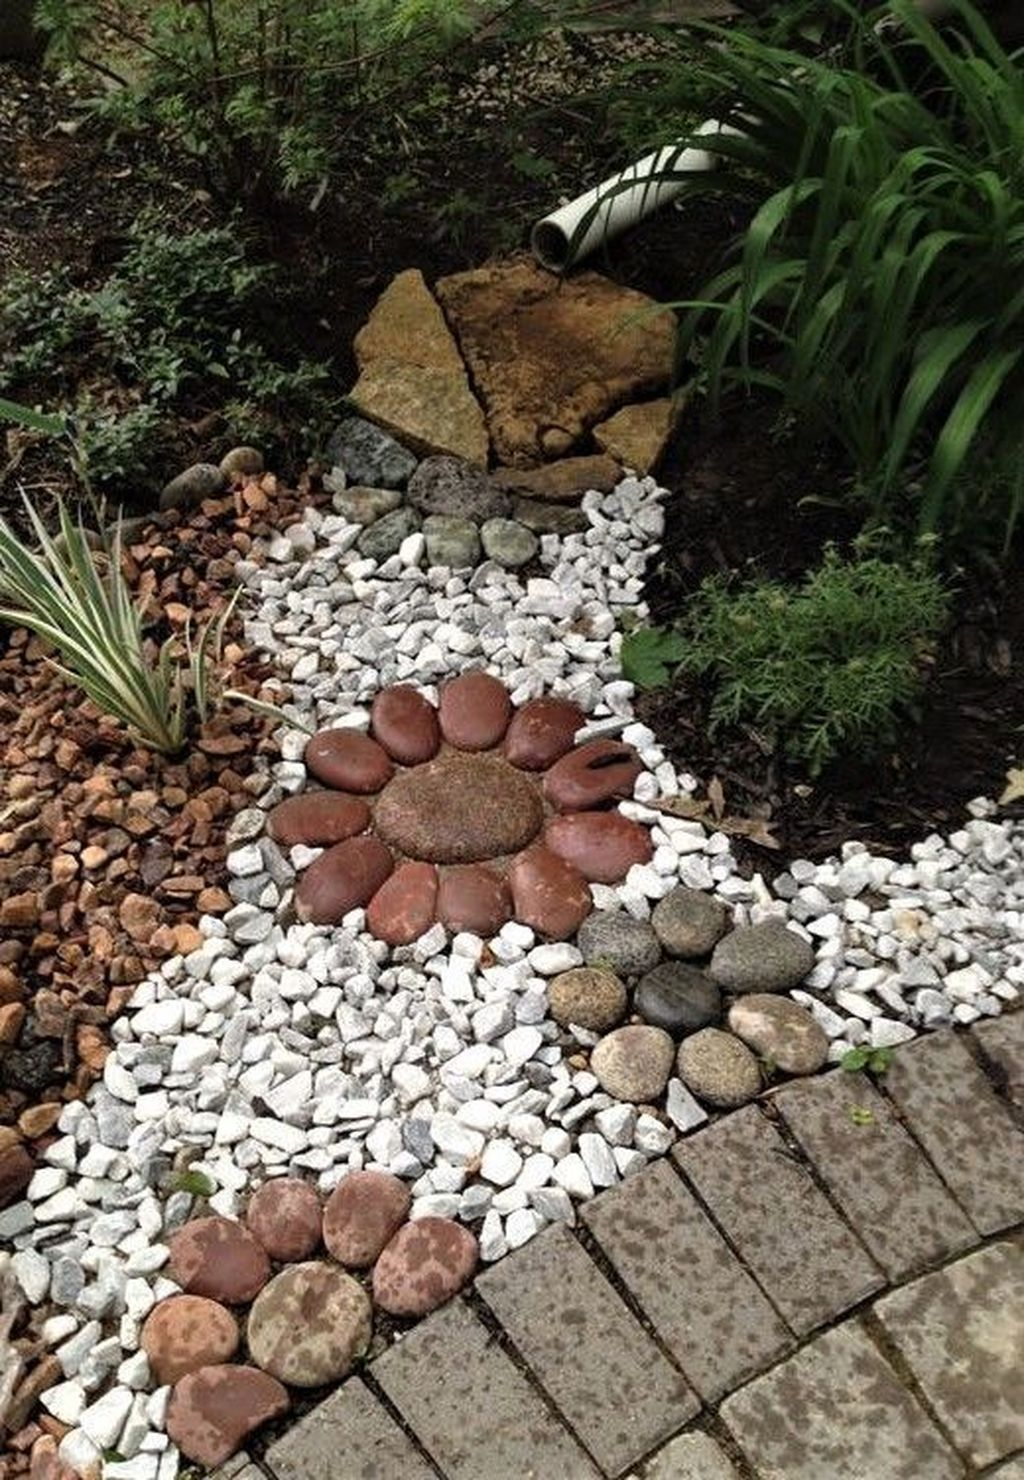 49 brilliant small rock gardens ideas landscaping with on beautiful front yard rock n flowers garden landscaping ideas how to create it id=89033